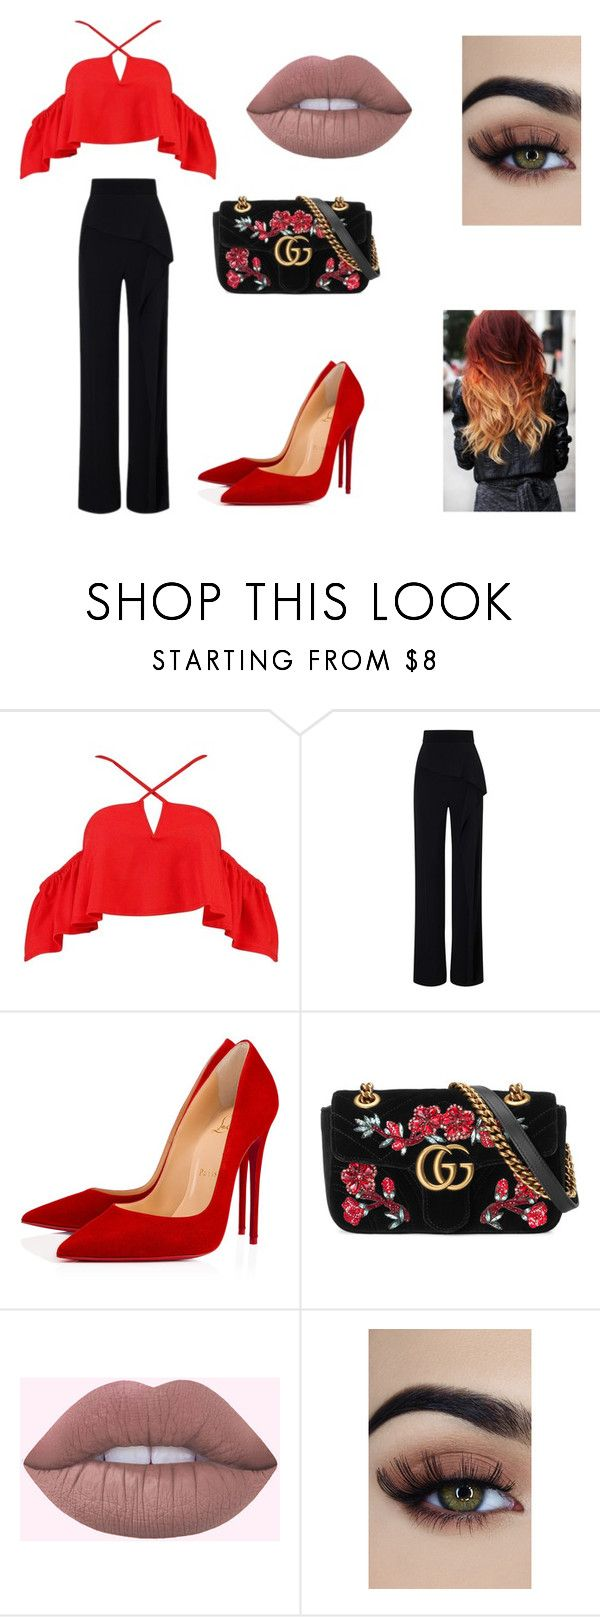 """Sans titre #515"" by radio-girl-21 ❤ liked on Polyvore featuring Boohoo, Roland Mouret, Christian Louboutin and Gucci"